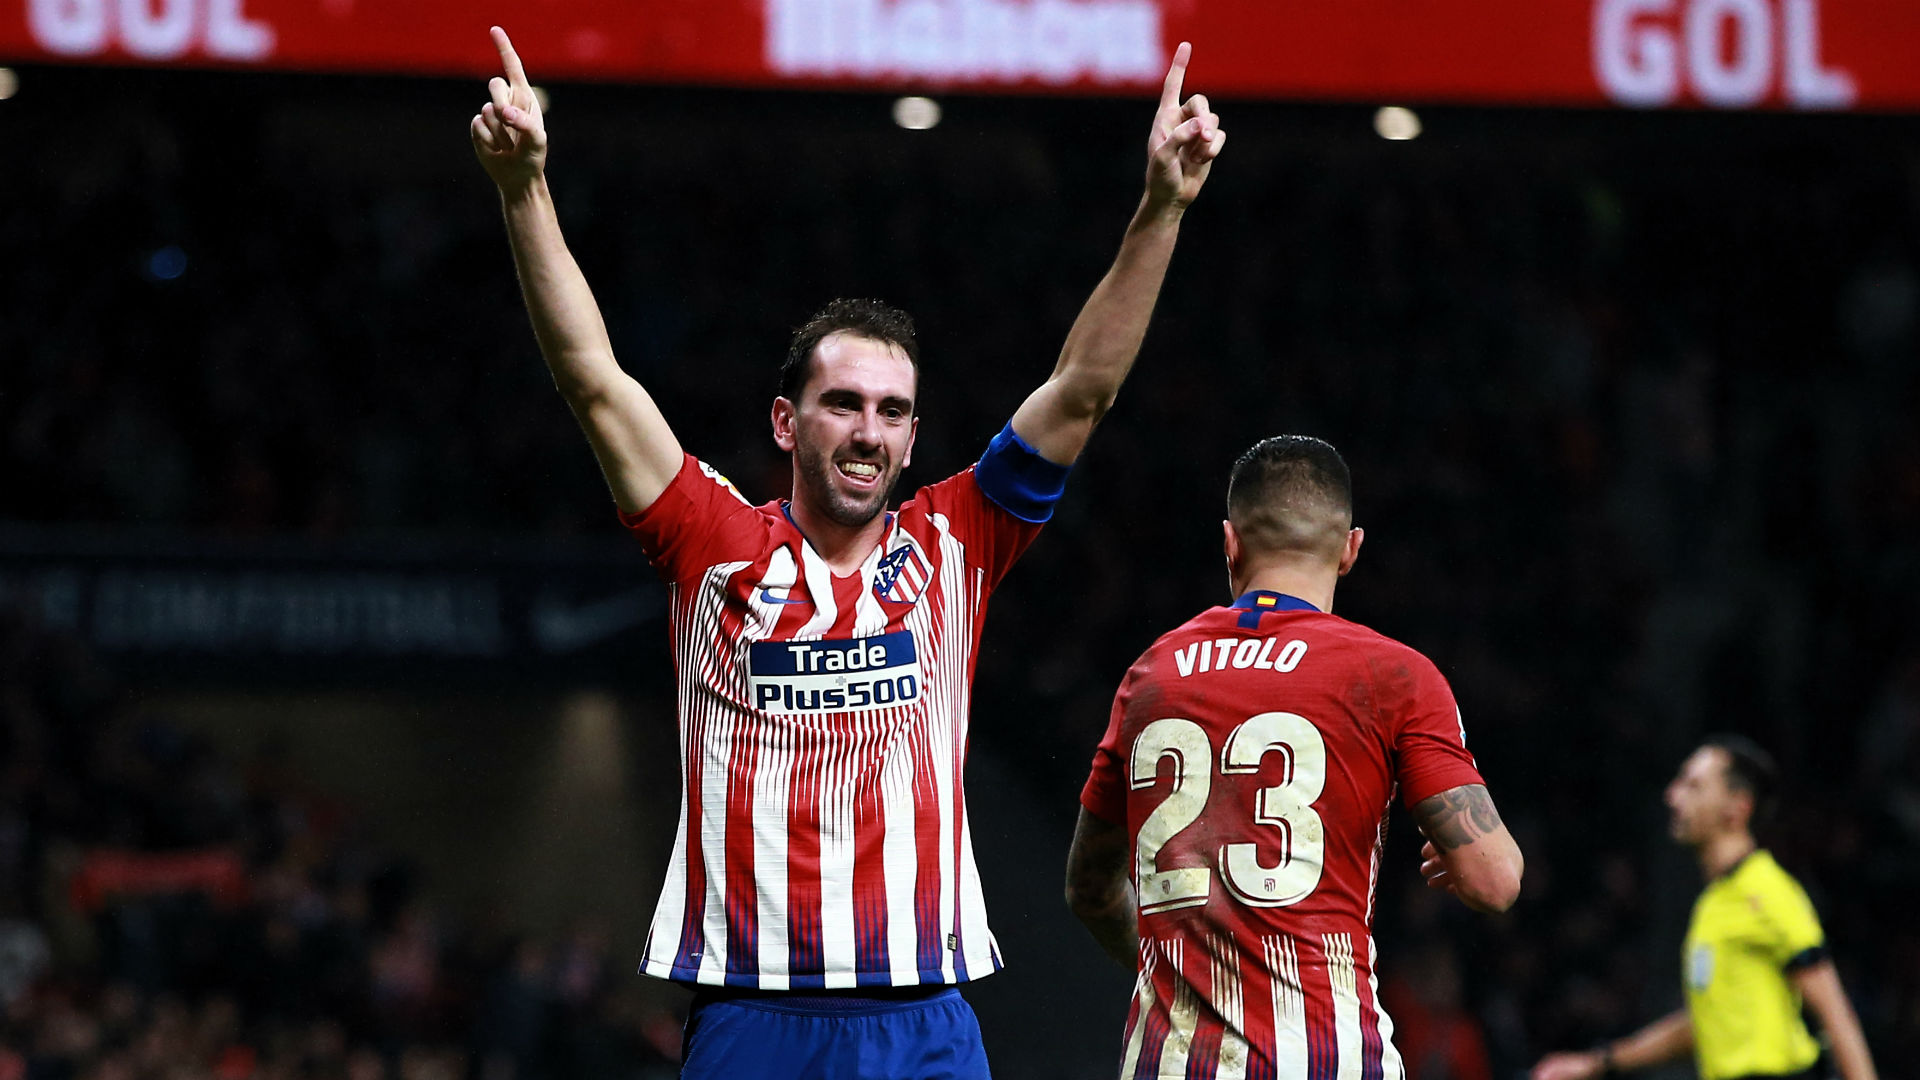 Simeone wanted me up front, reveals injured hero Godin